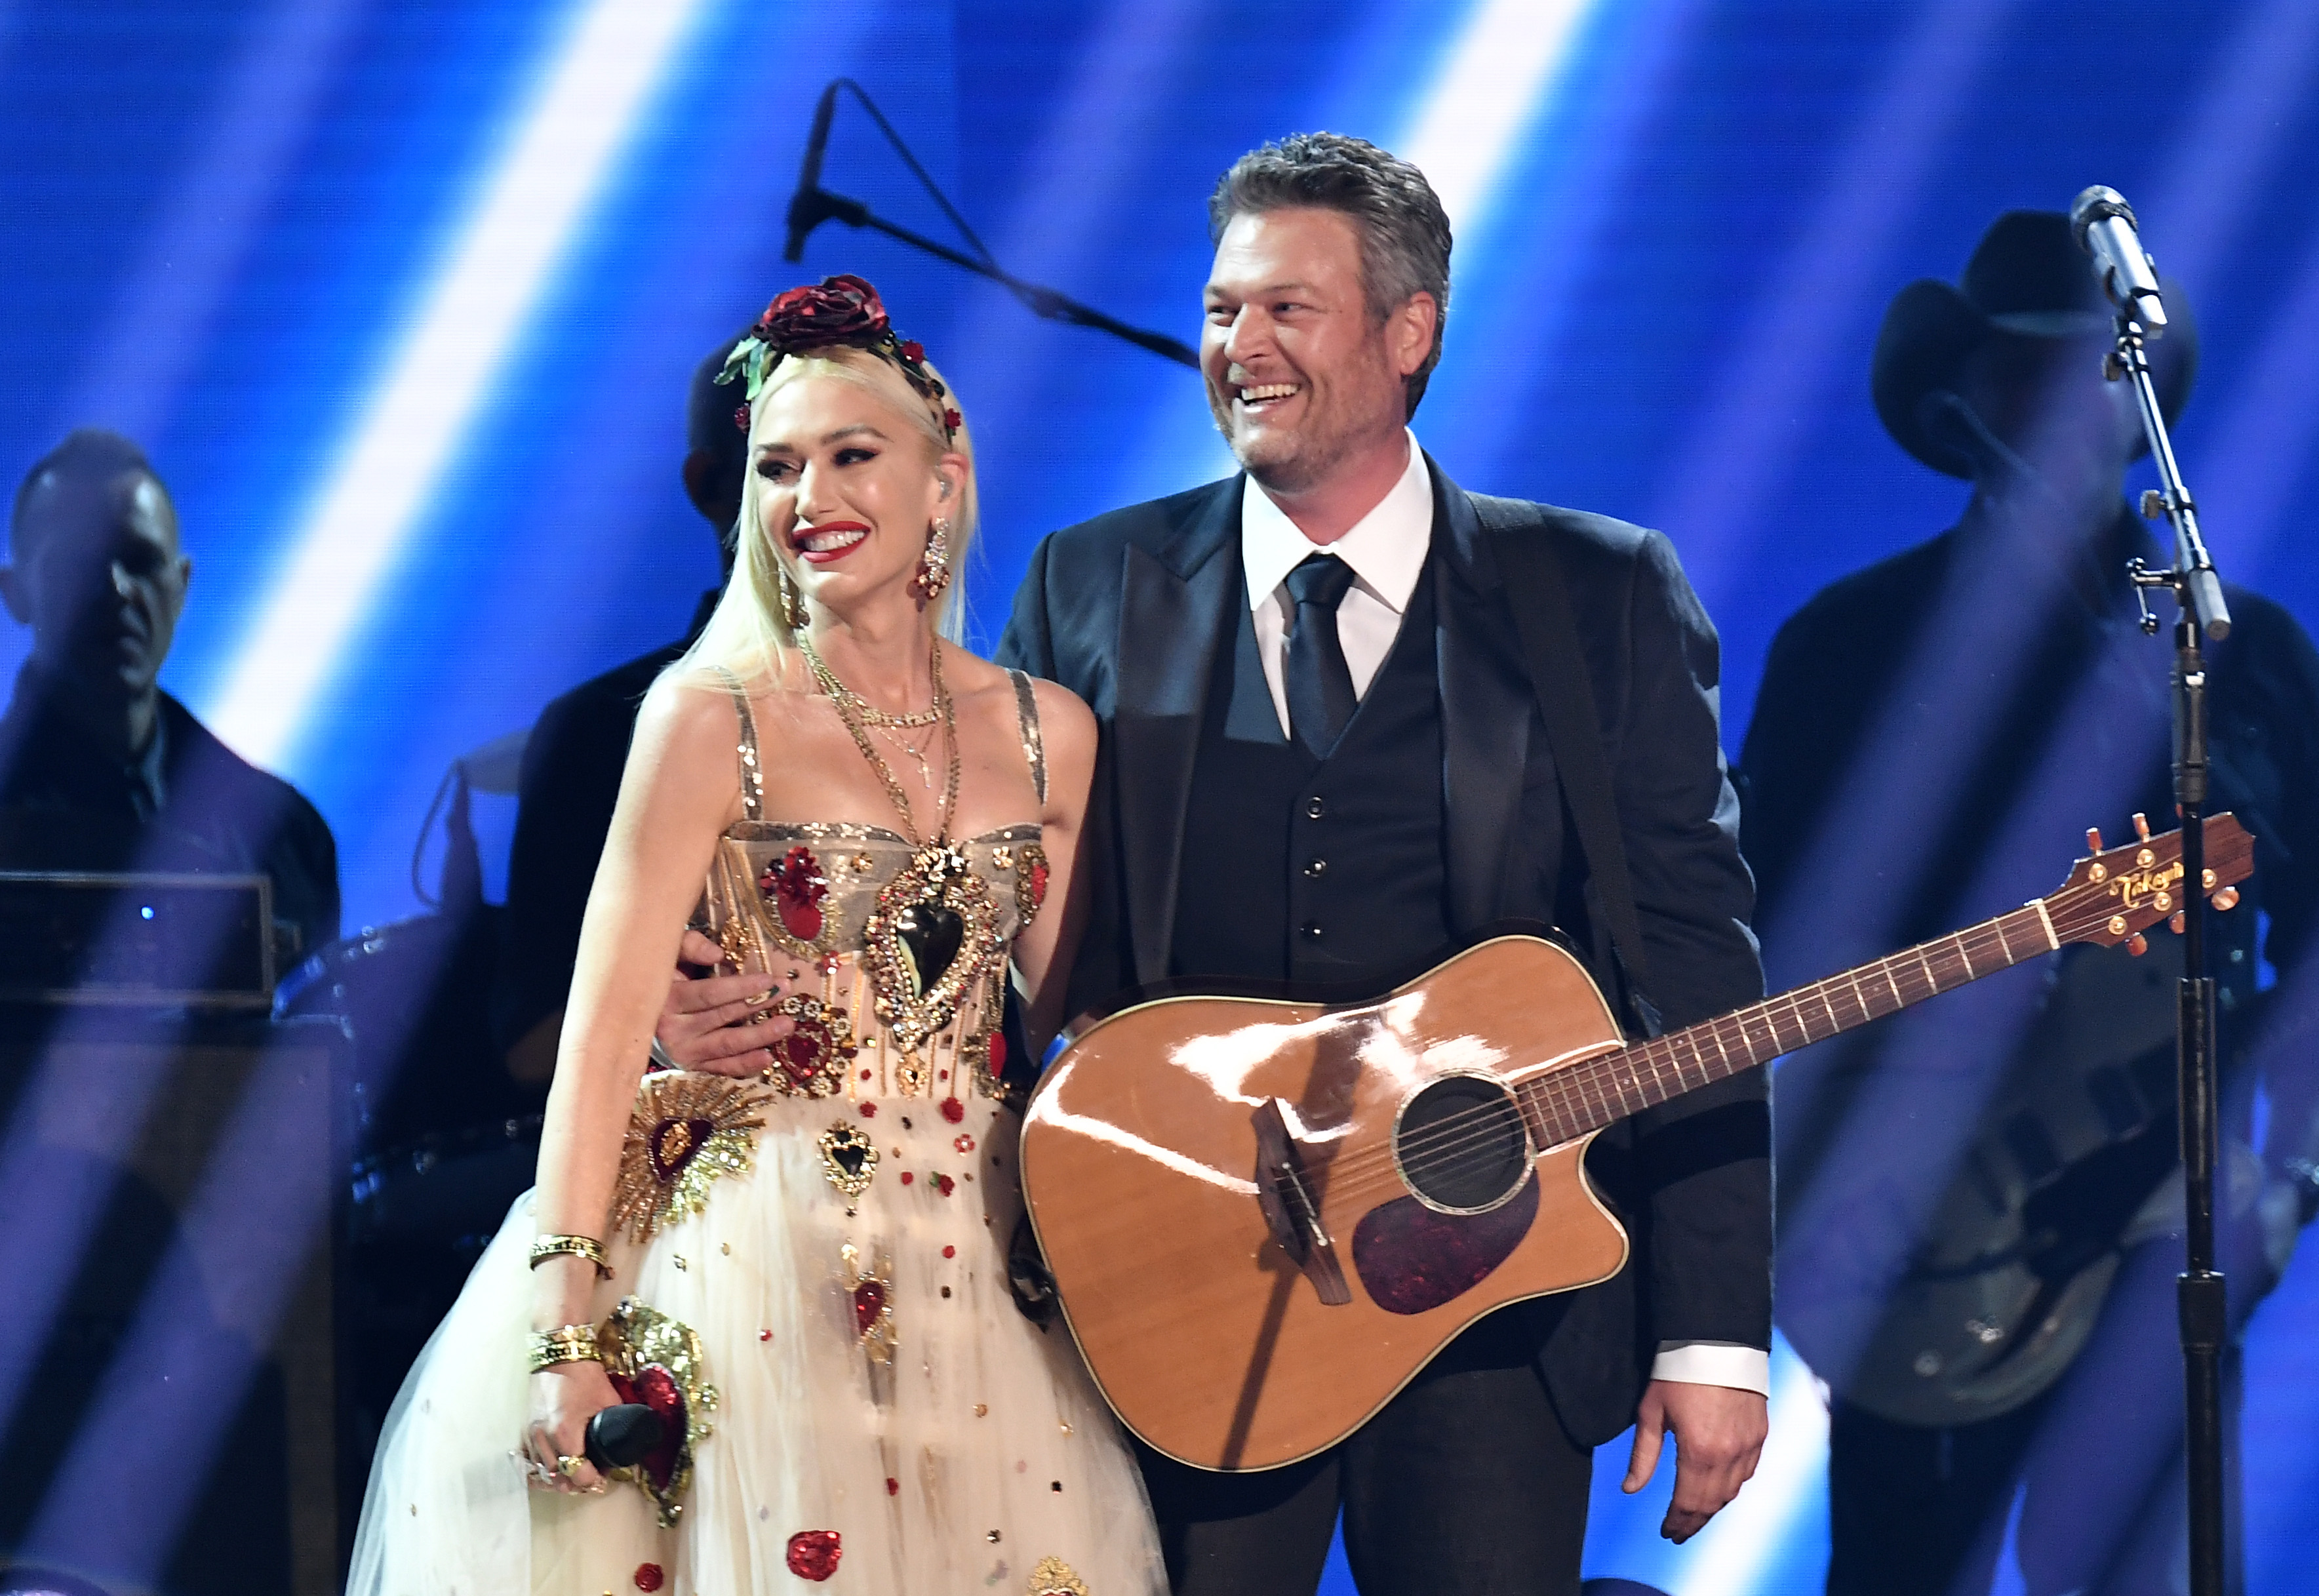 Gwen Stefani and Blake Shelton Look So in Love as They Perform 'Nobody But You' at 2020 Grammys